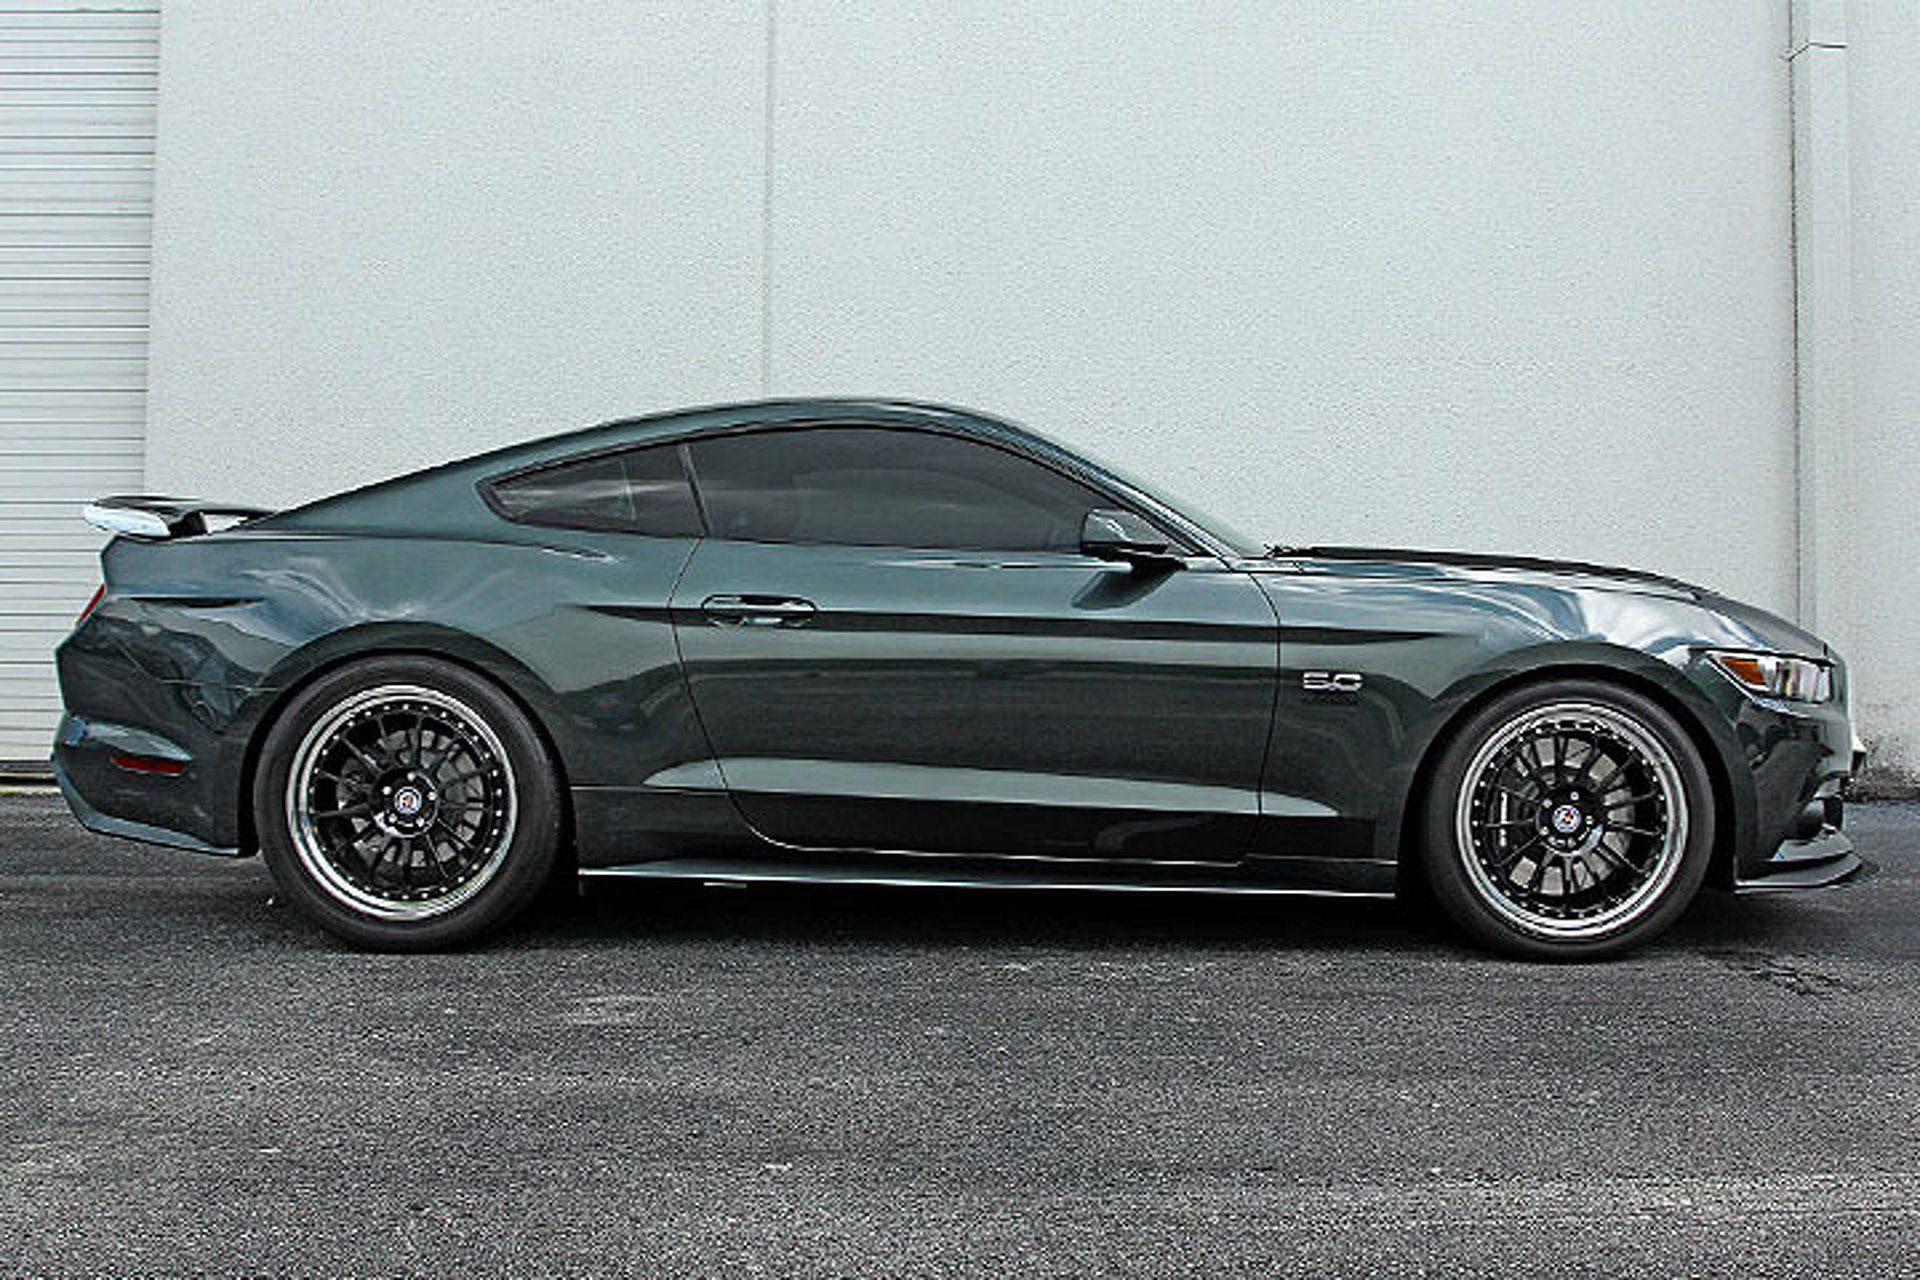 Life after sema the 2015 steeda mustang gt show car